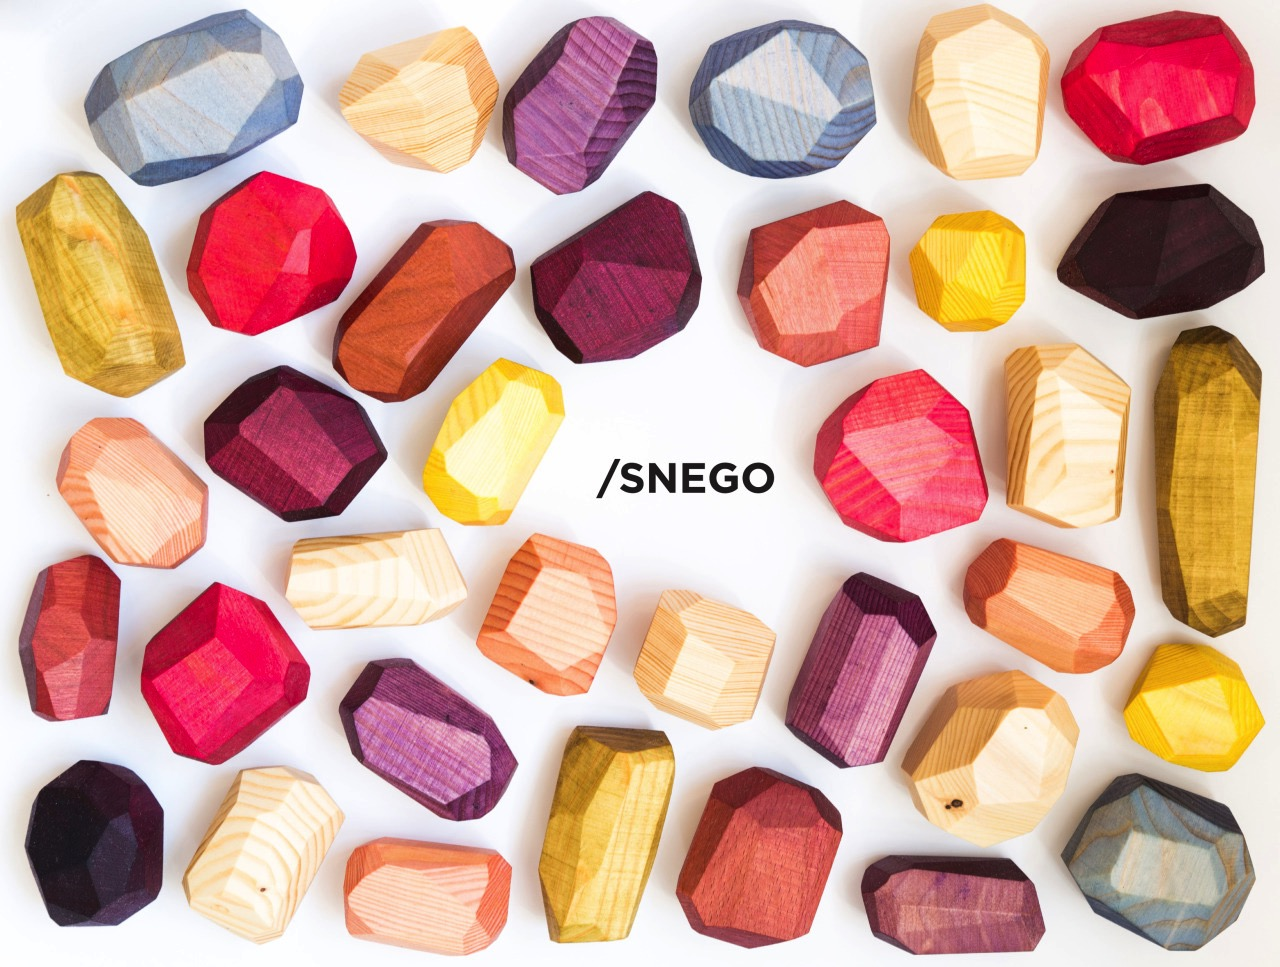 snego blocks